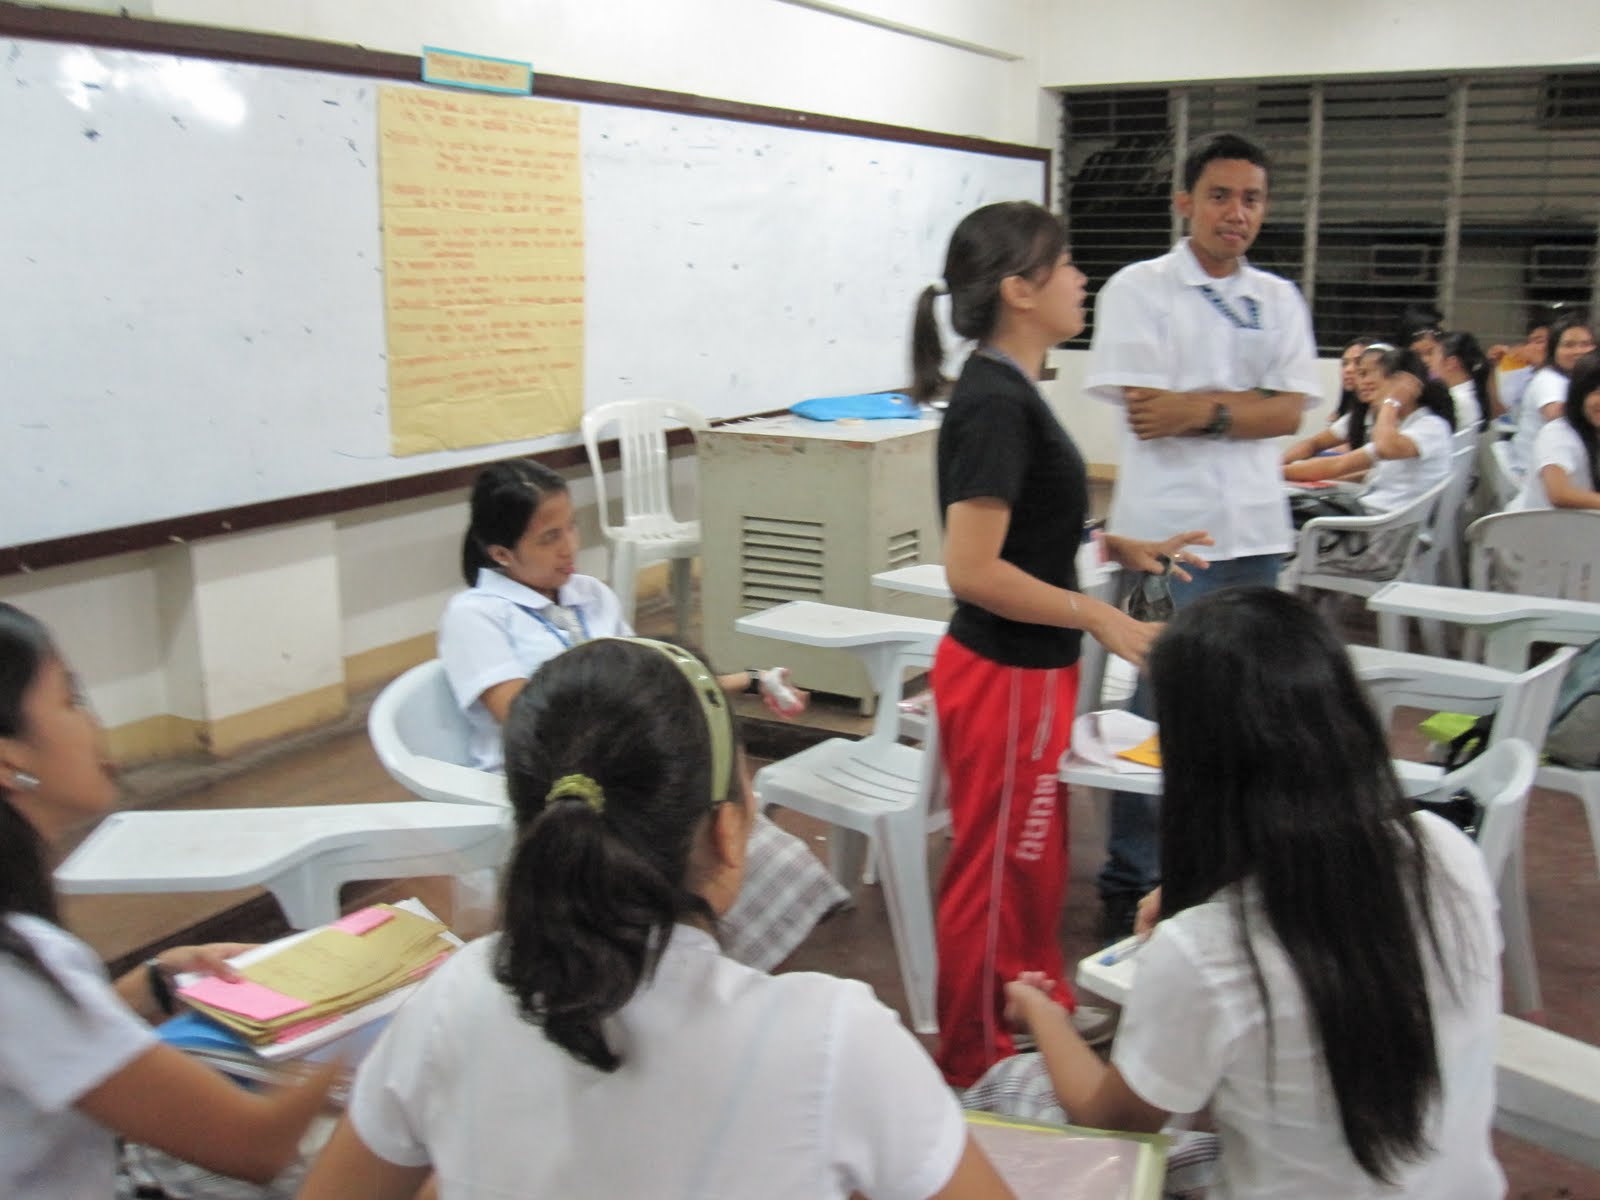 Educ tech july 2011 one must have good reasons why they want to teach an why they choose such major fandeluxe Images